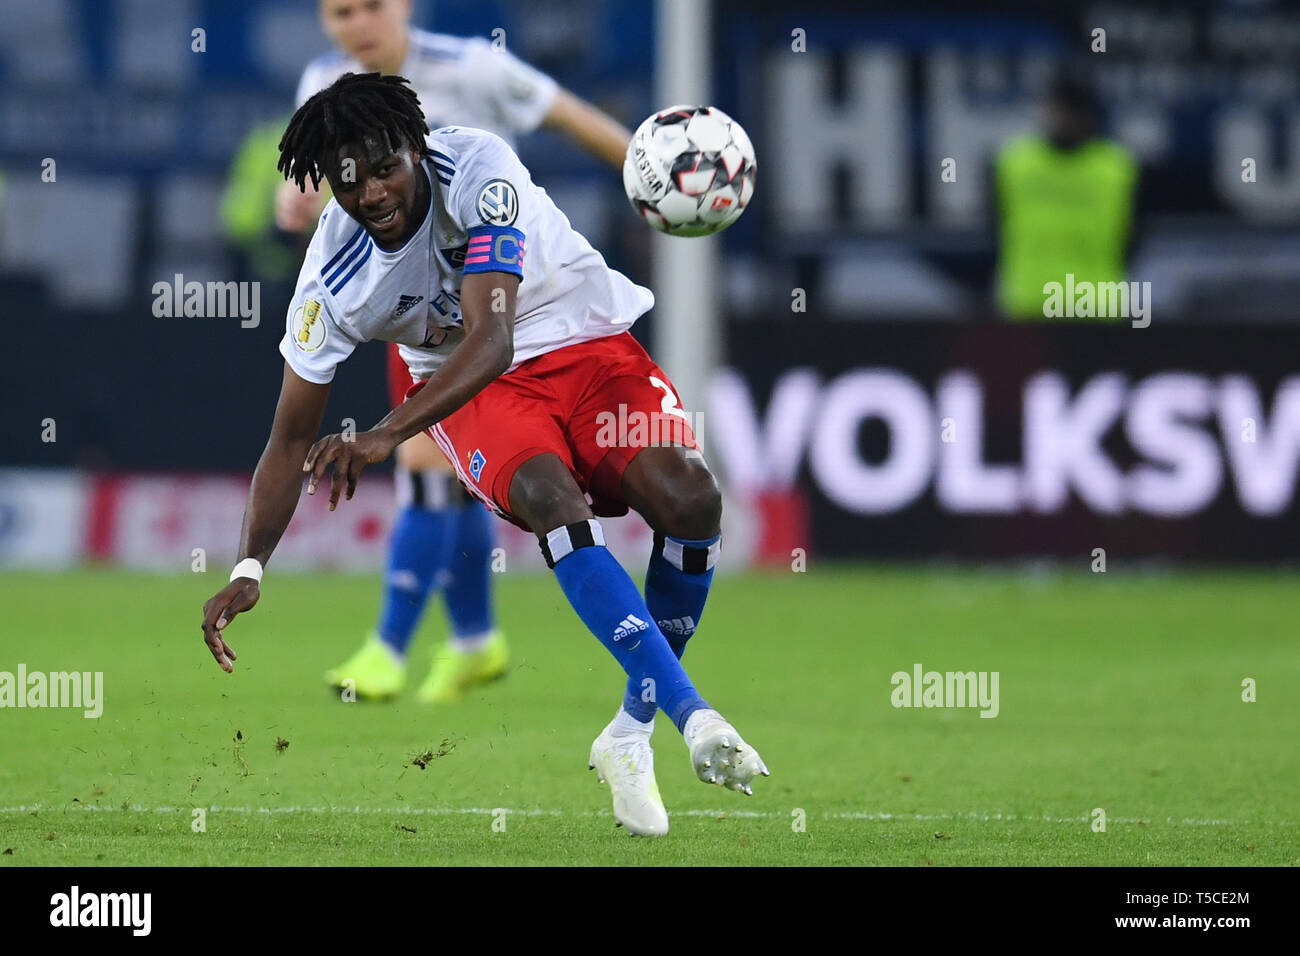 HAMBURG, GERMANY - APRIL 23: Gideon Jung of Hamburg runs with the ball during the DFB Pokal semi final match between Hamburger Sport Verein and Rasen  - Stock Image